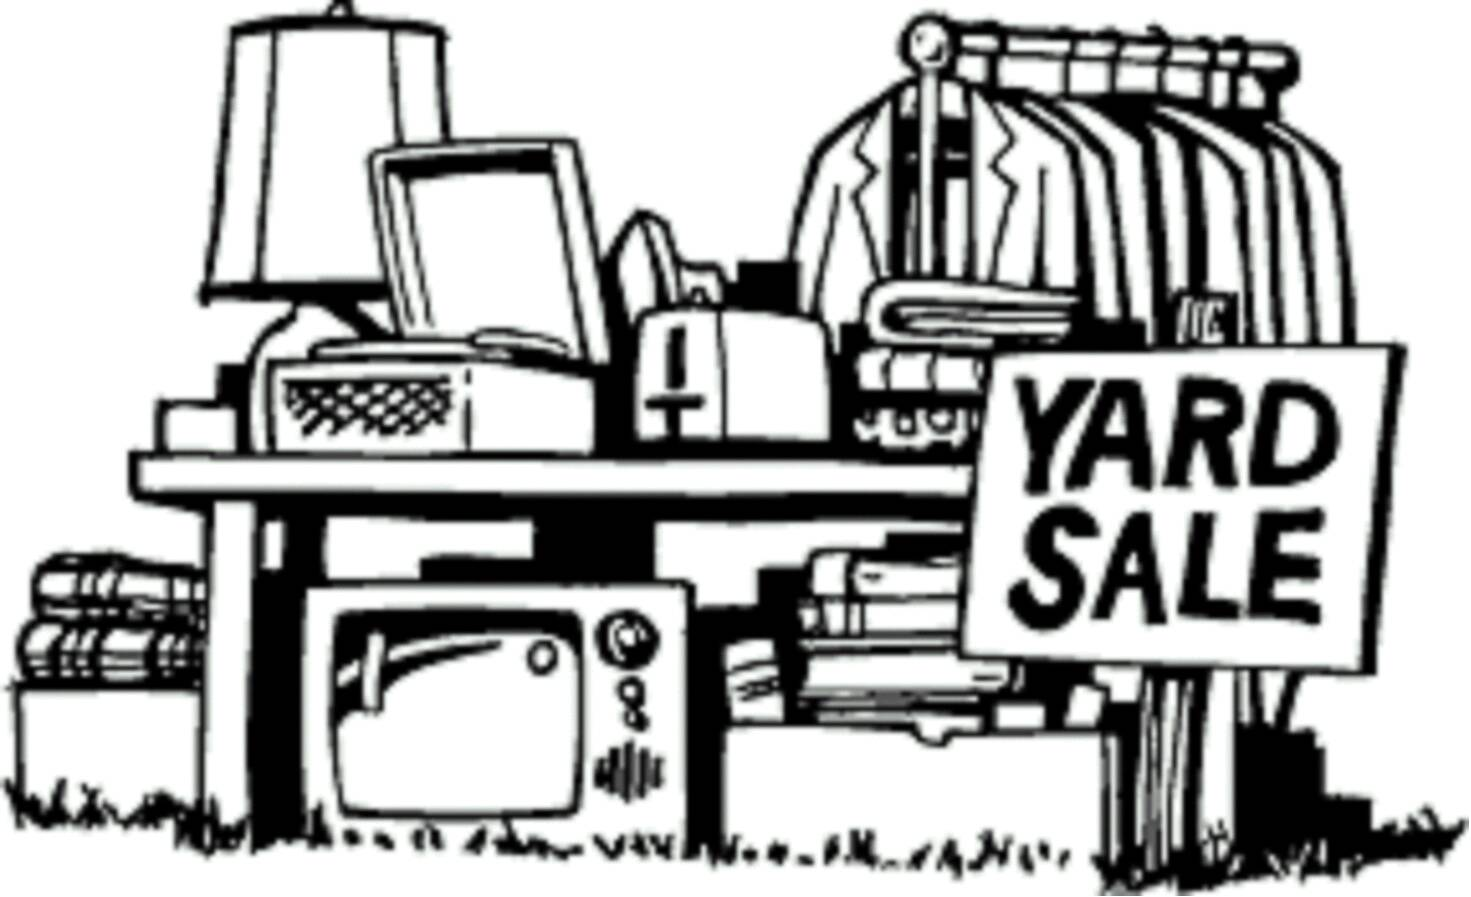 Yard sale flyers clipart clipart kid 2